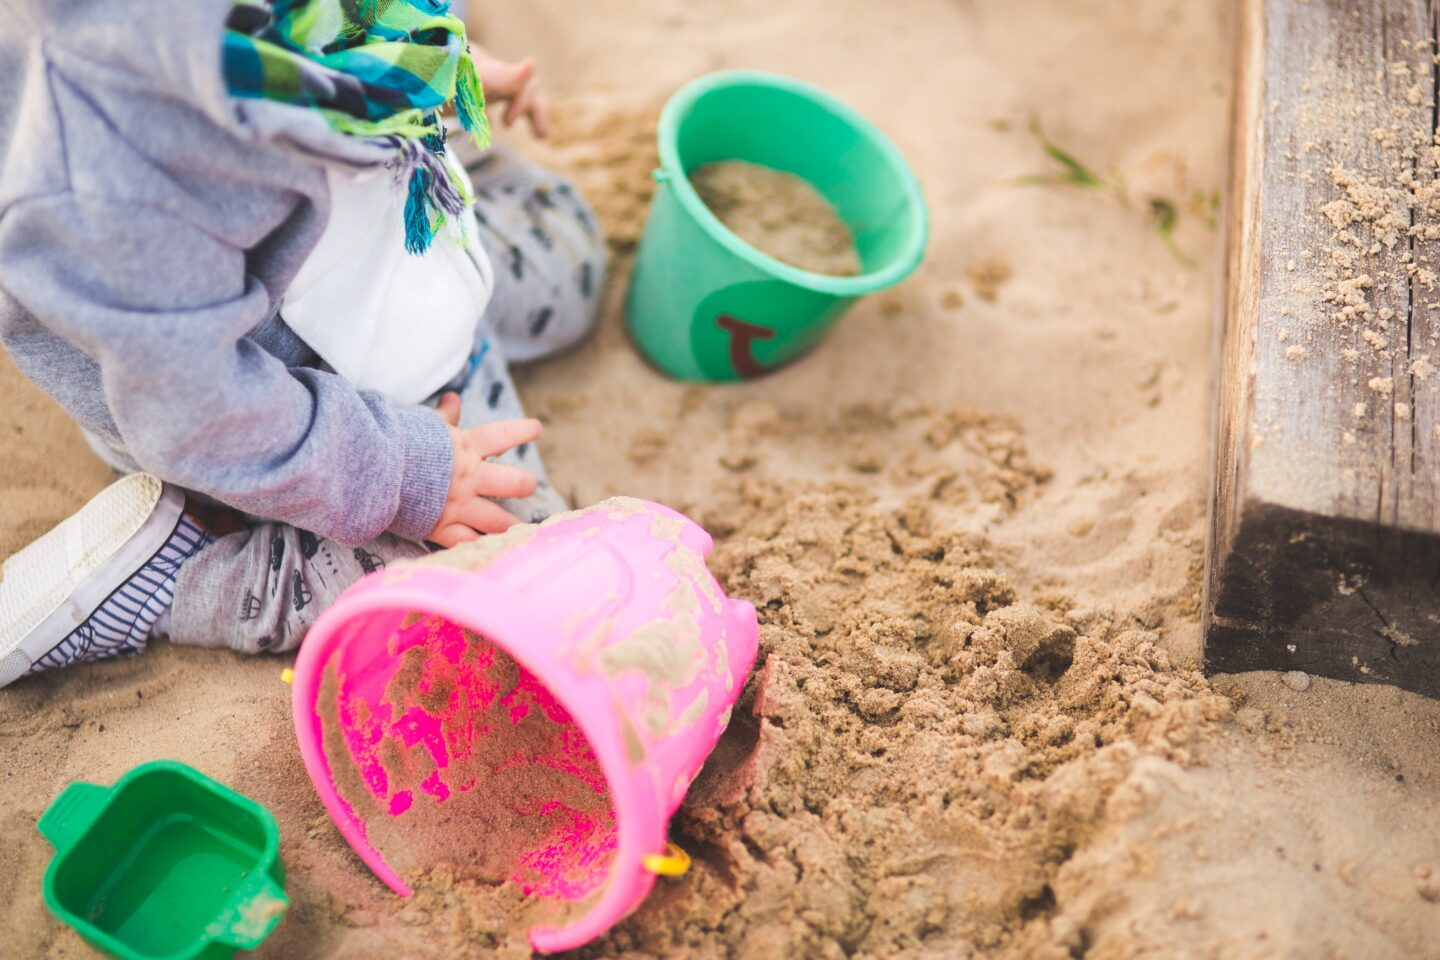 playing in sandpit with buckets